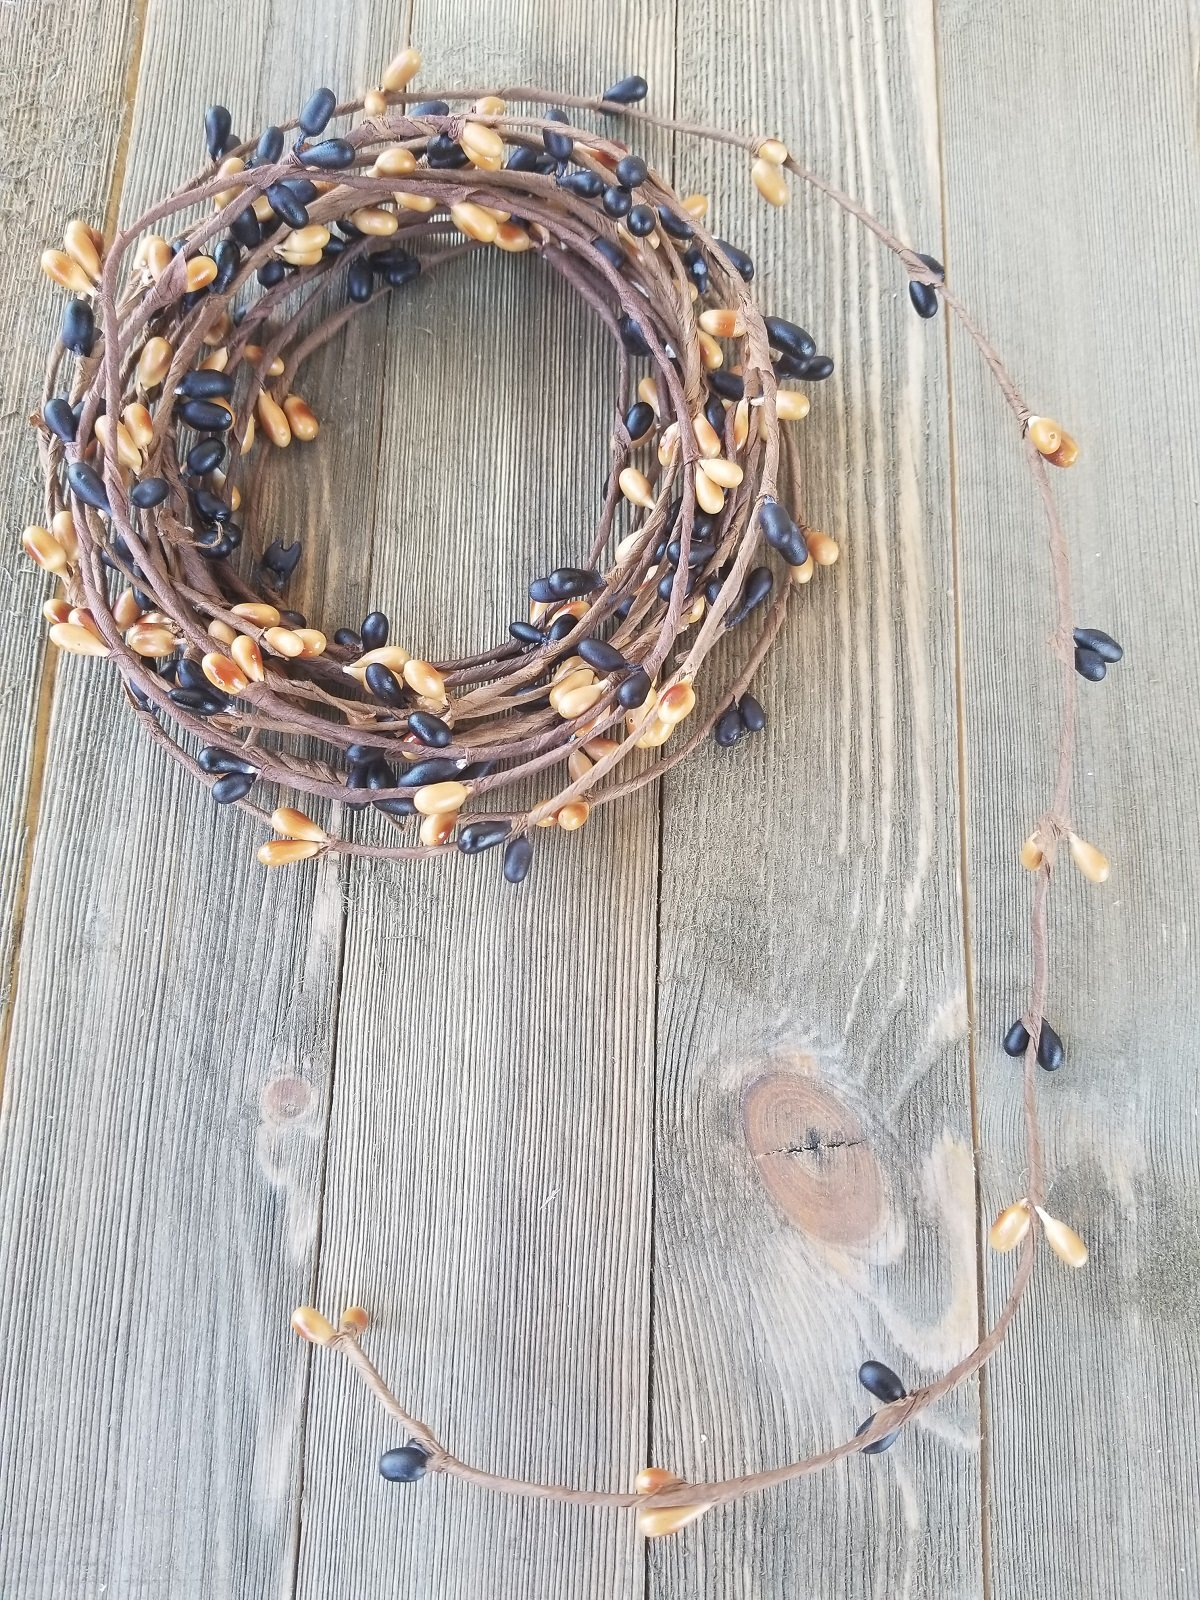 Black & Tan Pip Berry Single Ply Garland 18' Country Primitive Floral Craft Decor - 3 Strands of 6' Garland that Can Be Utilized Separately or Twisted together to Equal 18 Feet Of String Garland